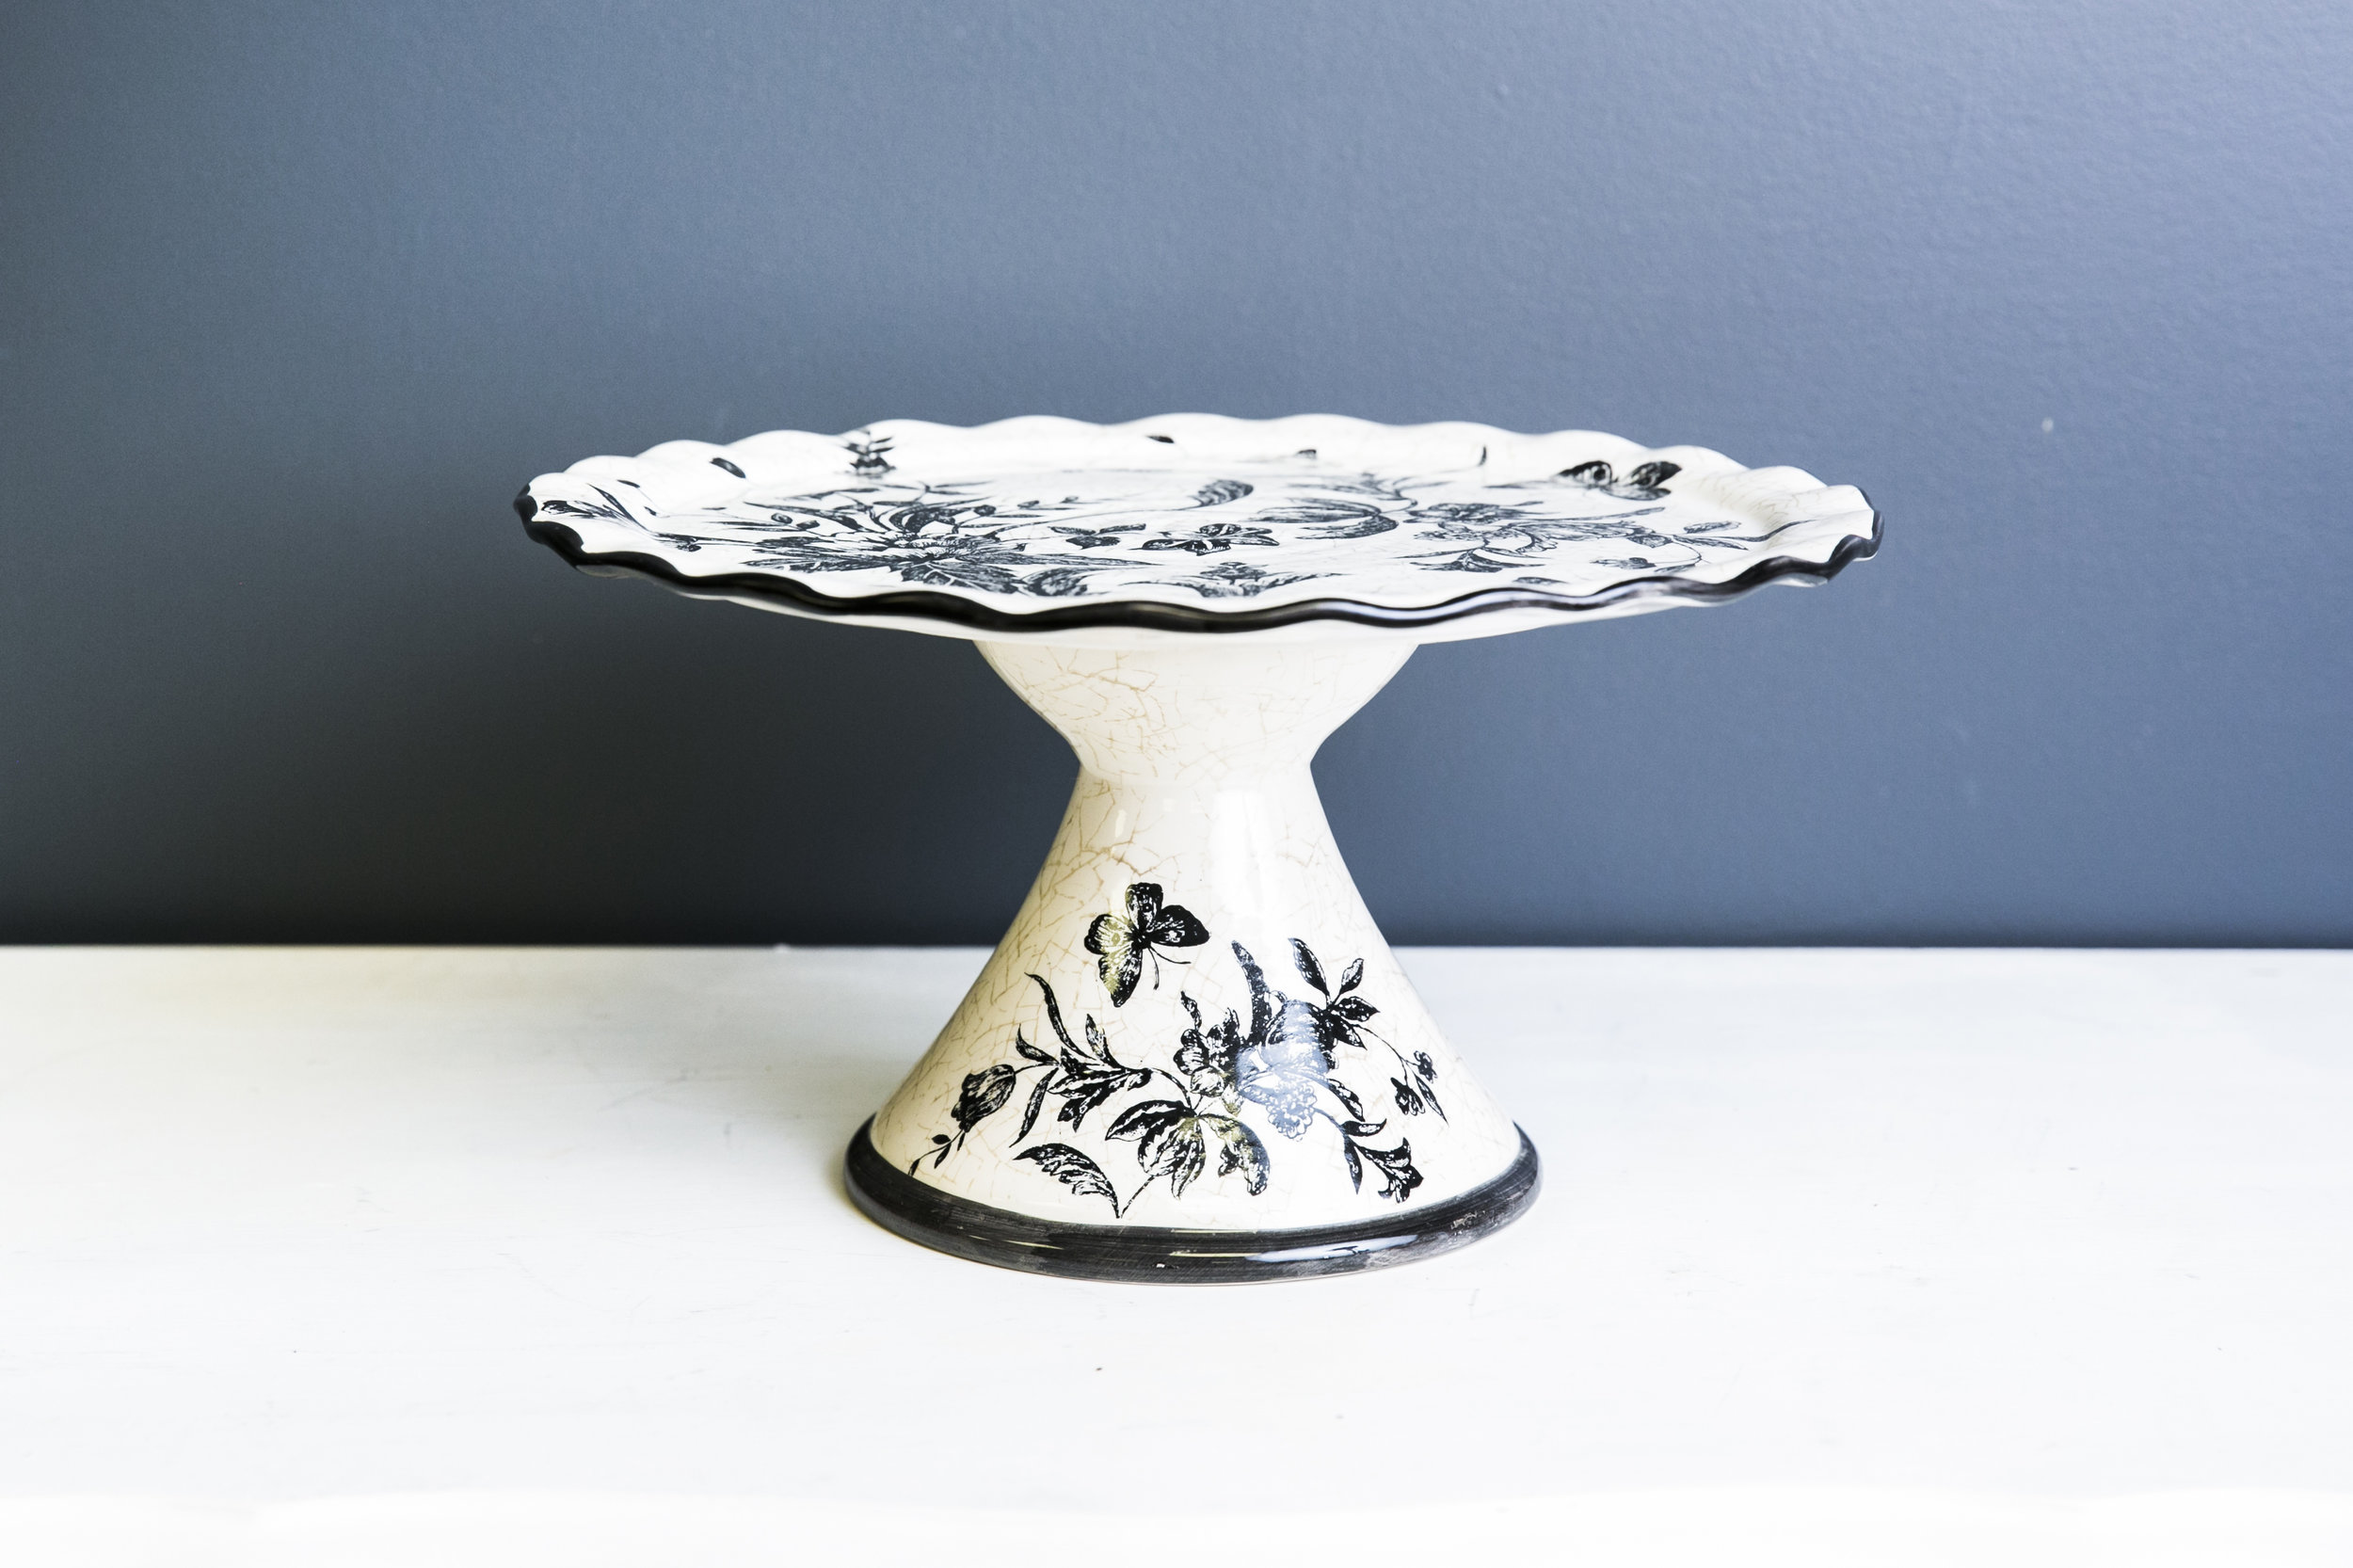 Rory Cake Plate Stand - White Black Design